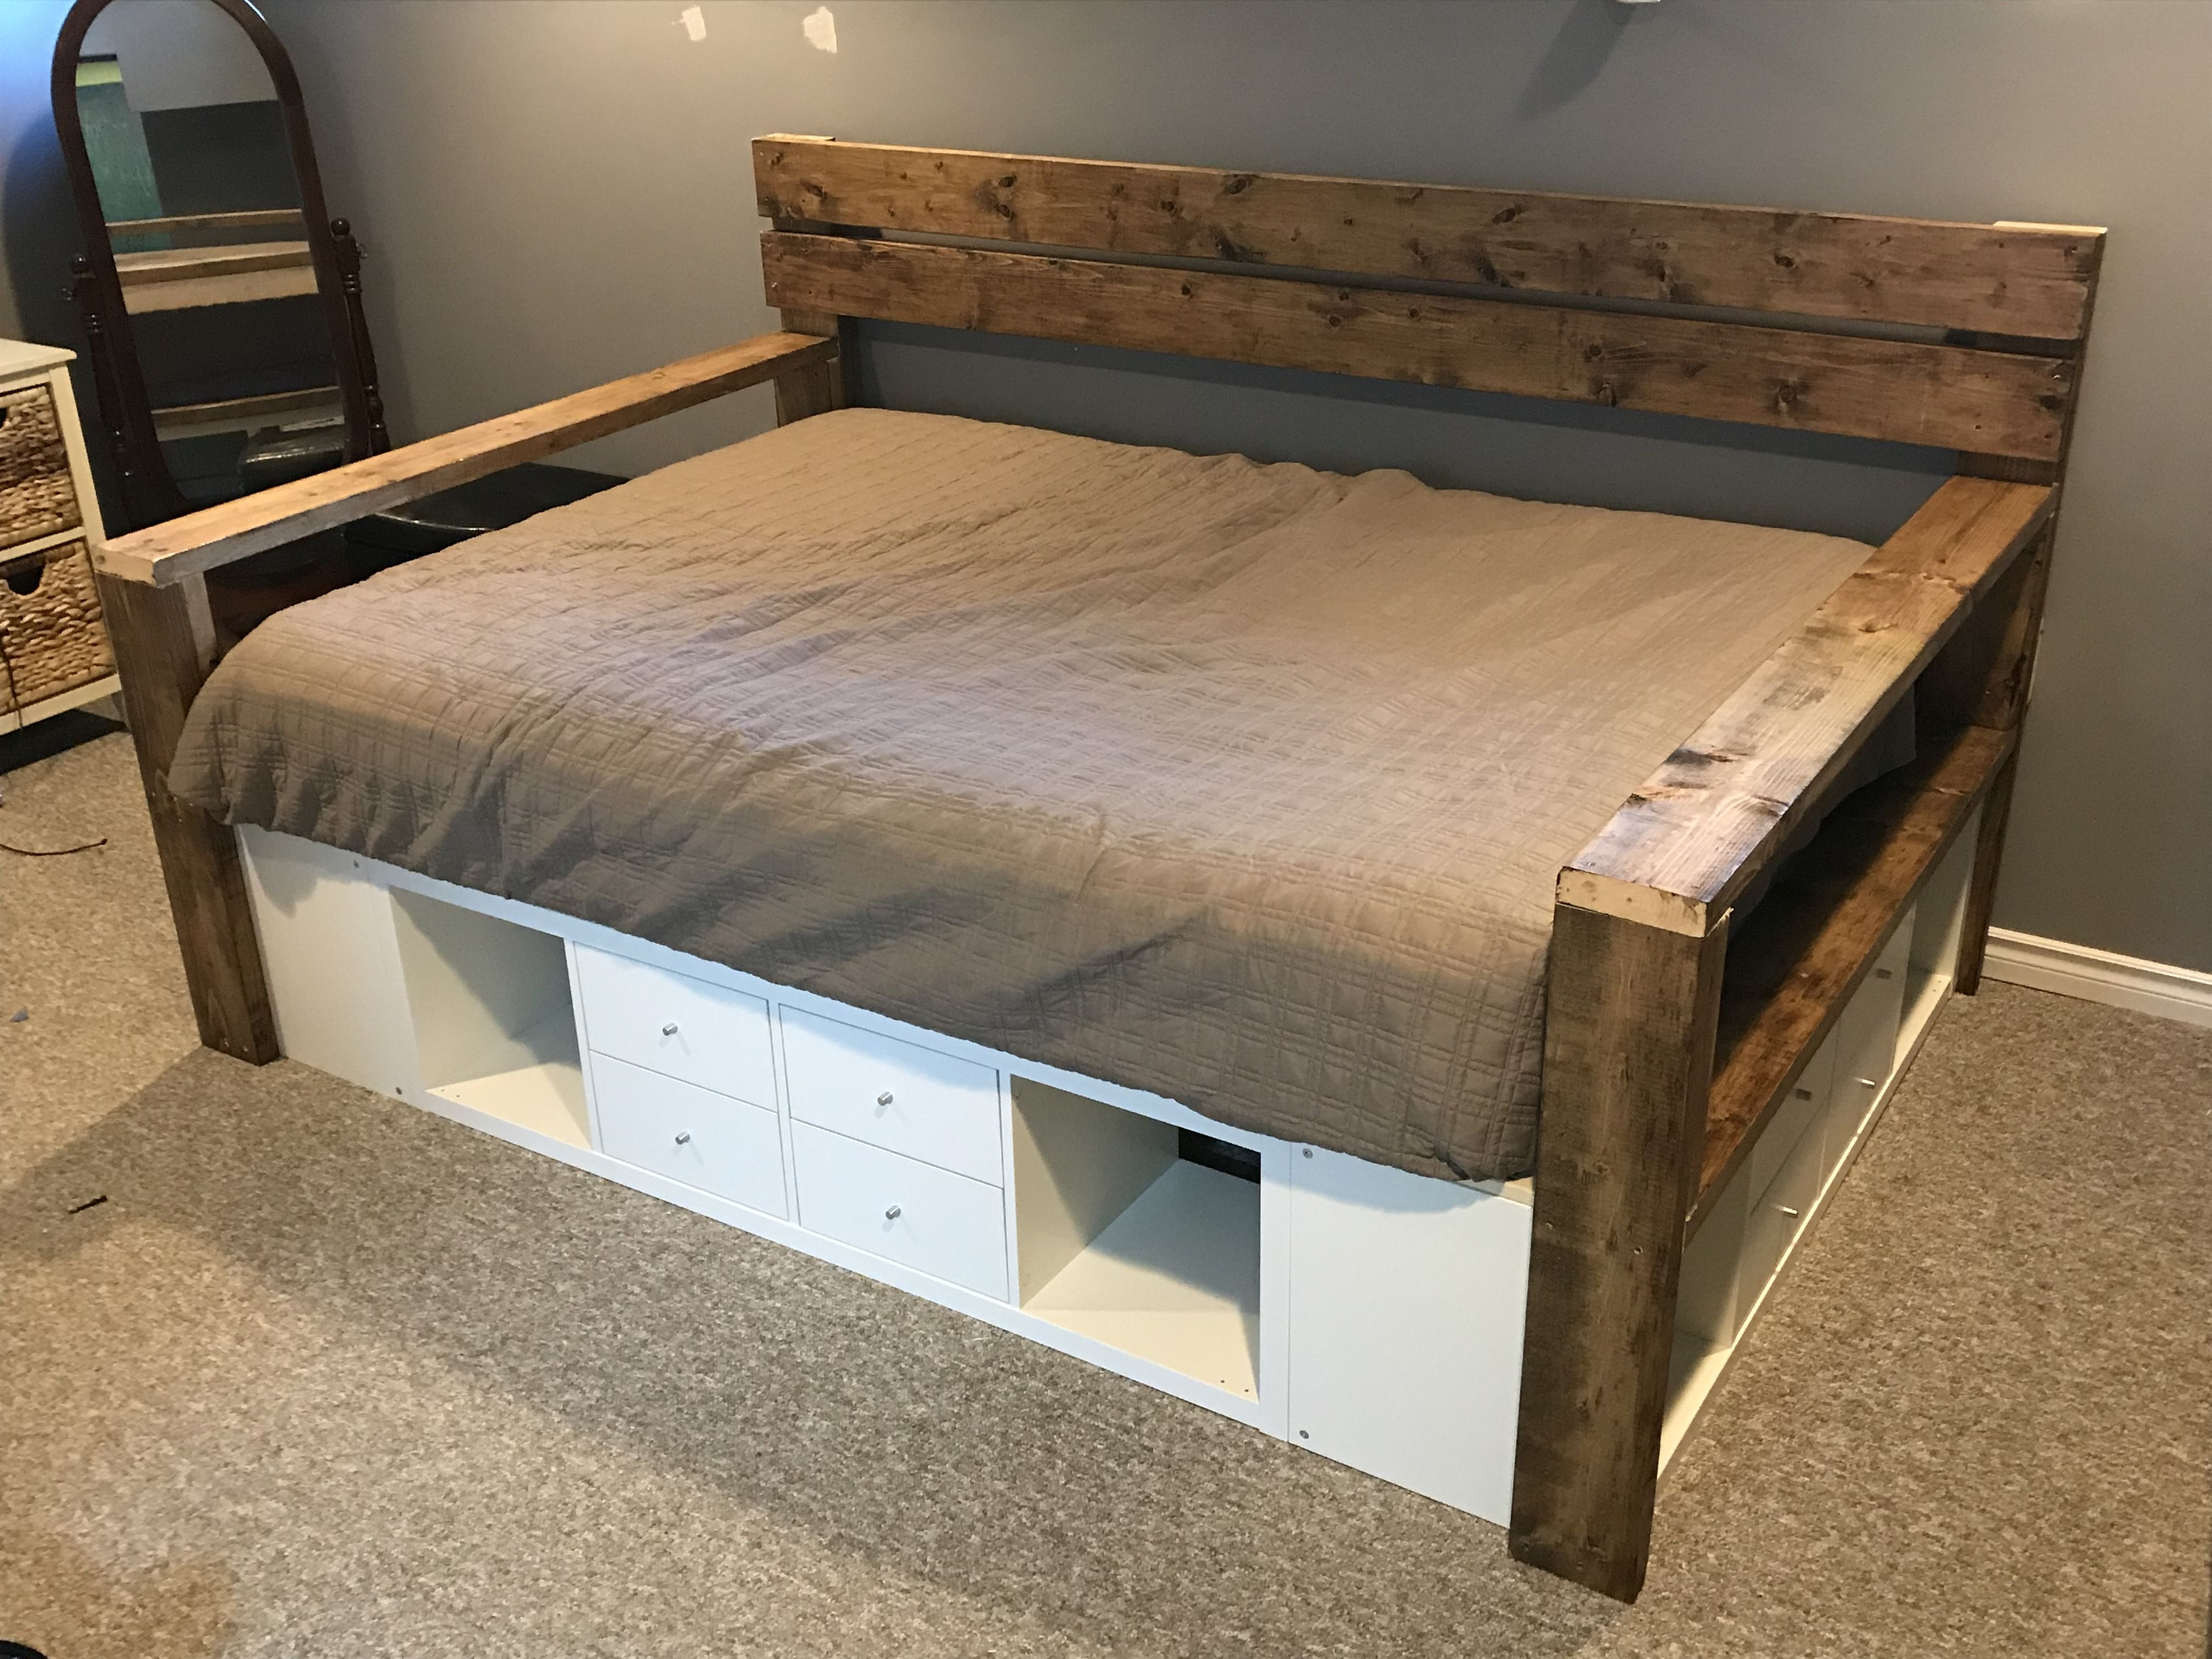 - Our Ikea Hack Queen Size DayBed! Queen Daybed, Queen Daybed